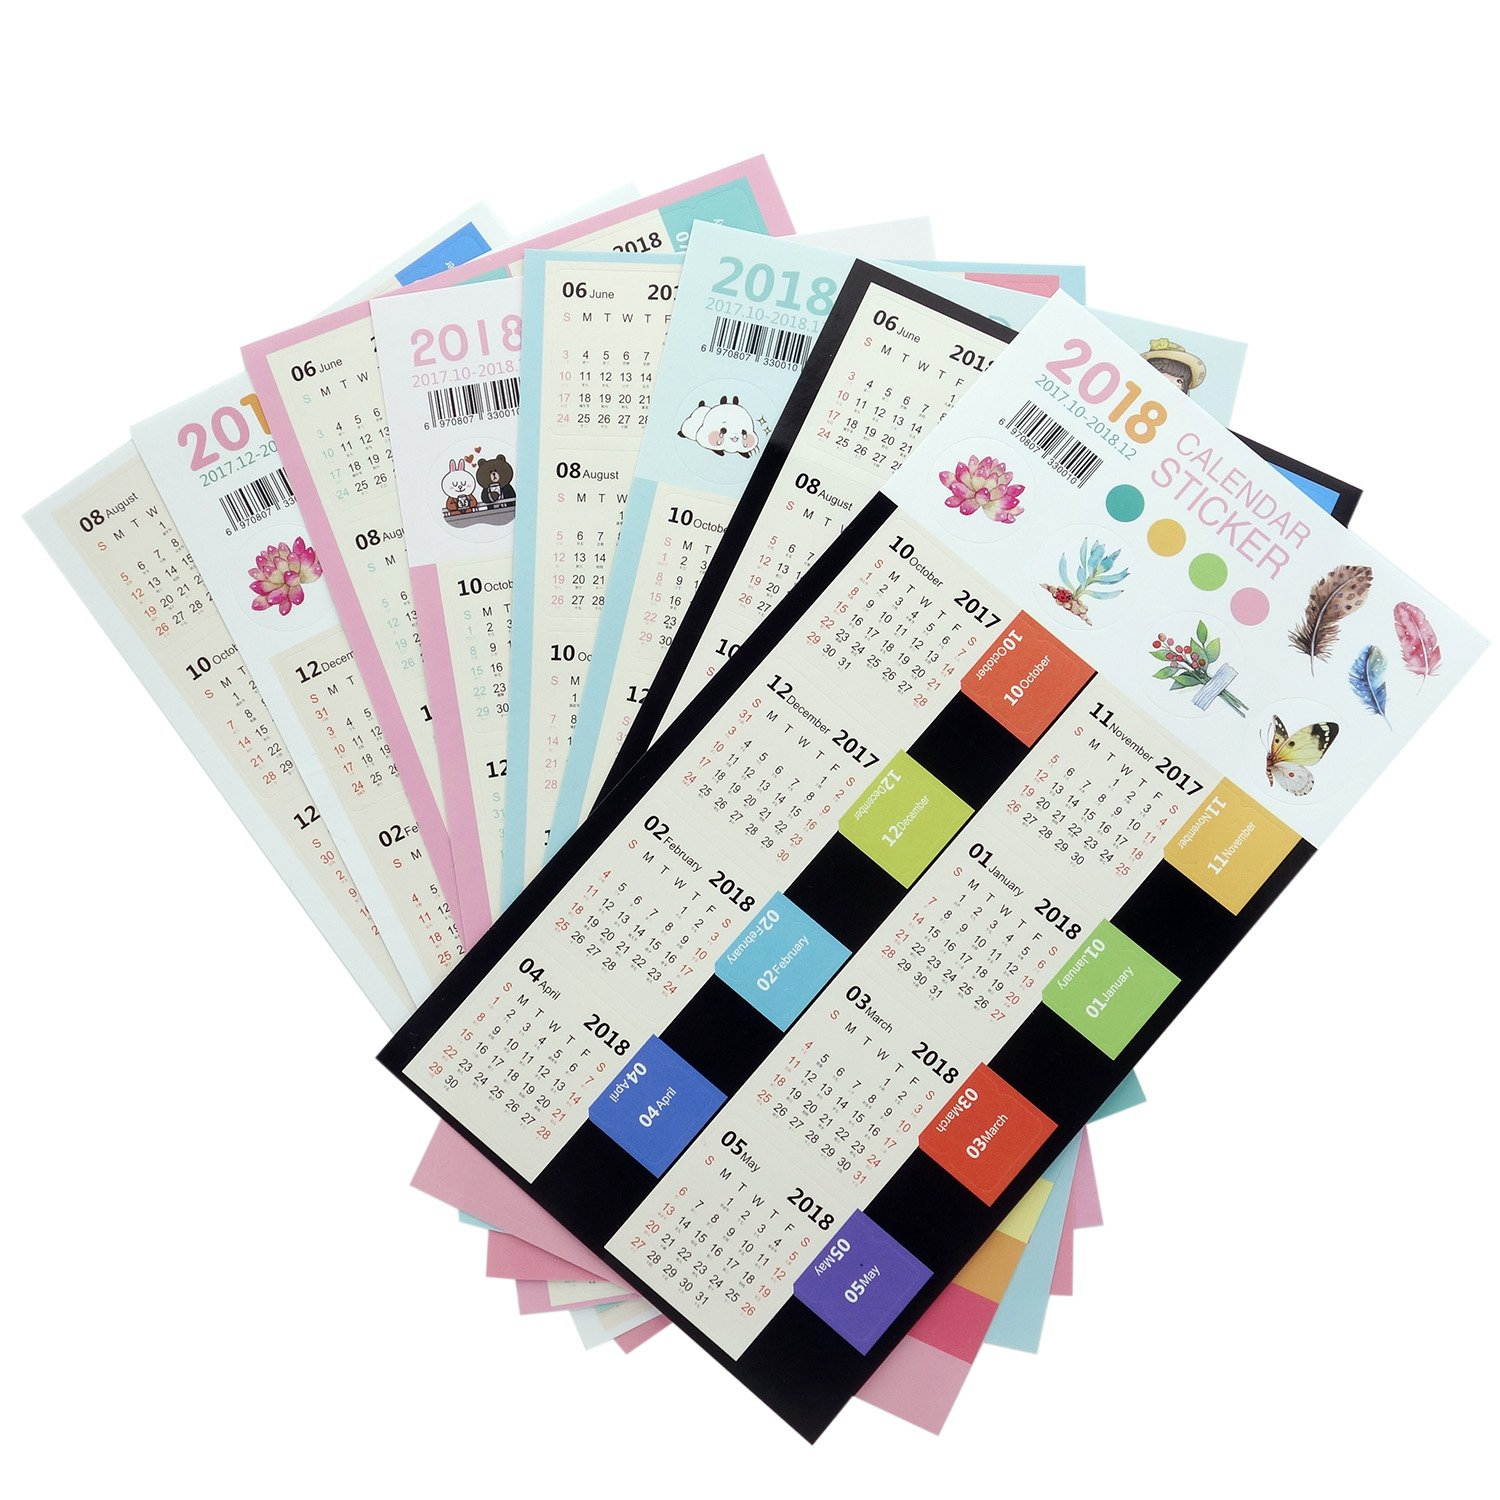 D-worthy 4 Sets 2018 Calendars Stickers Monthly Index Dividers,Self Adhesive Tabs, for Bullet Journal/Planners/Agenda, from October 2017 to December 2018